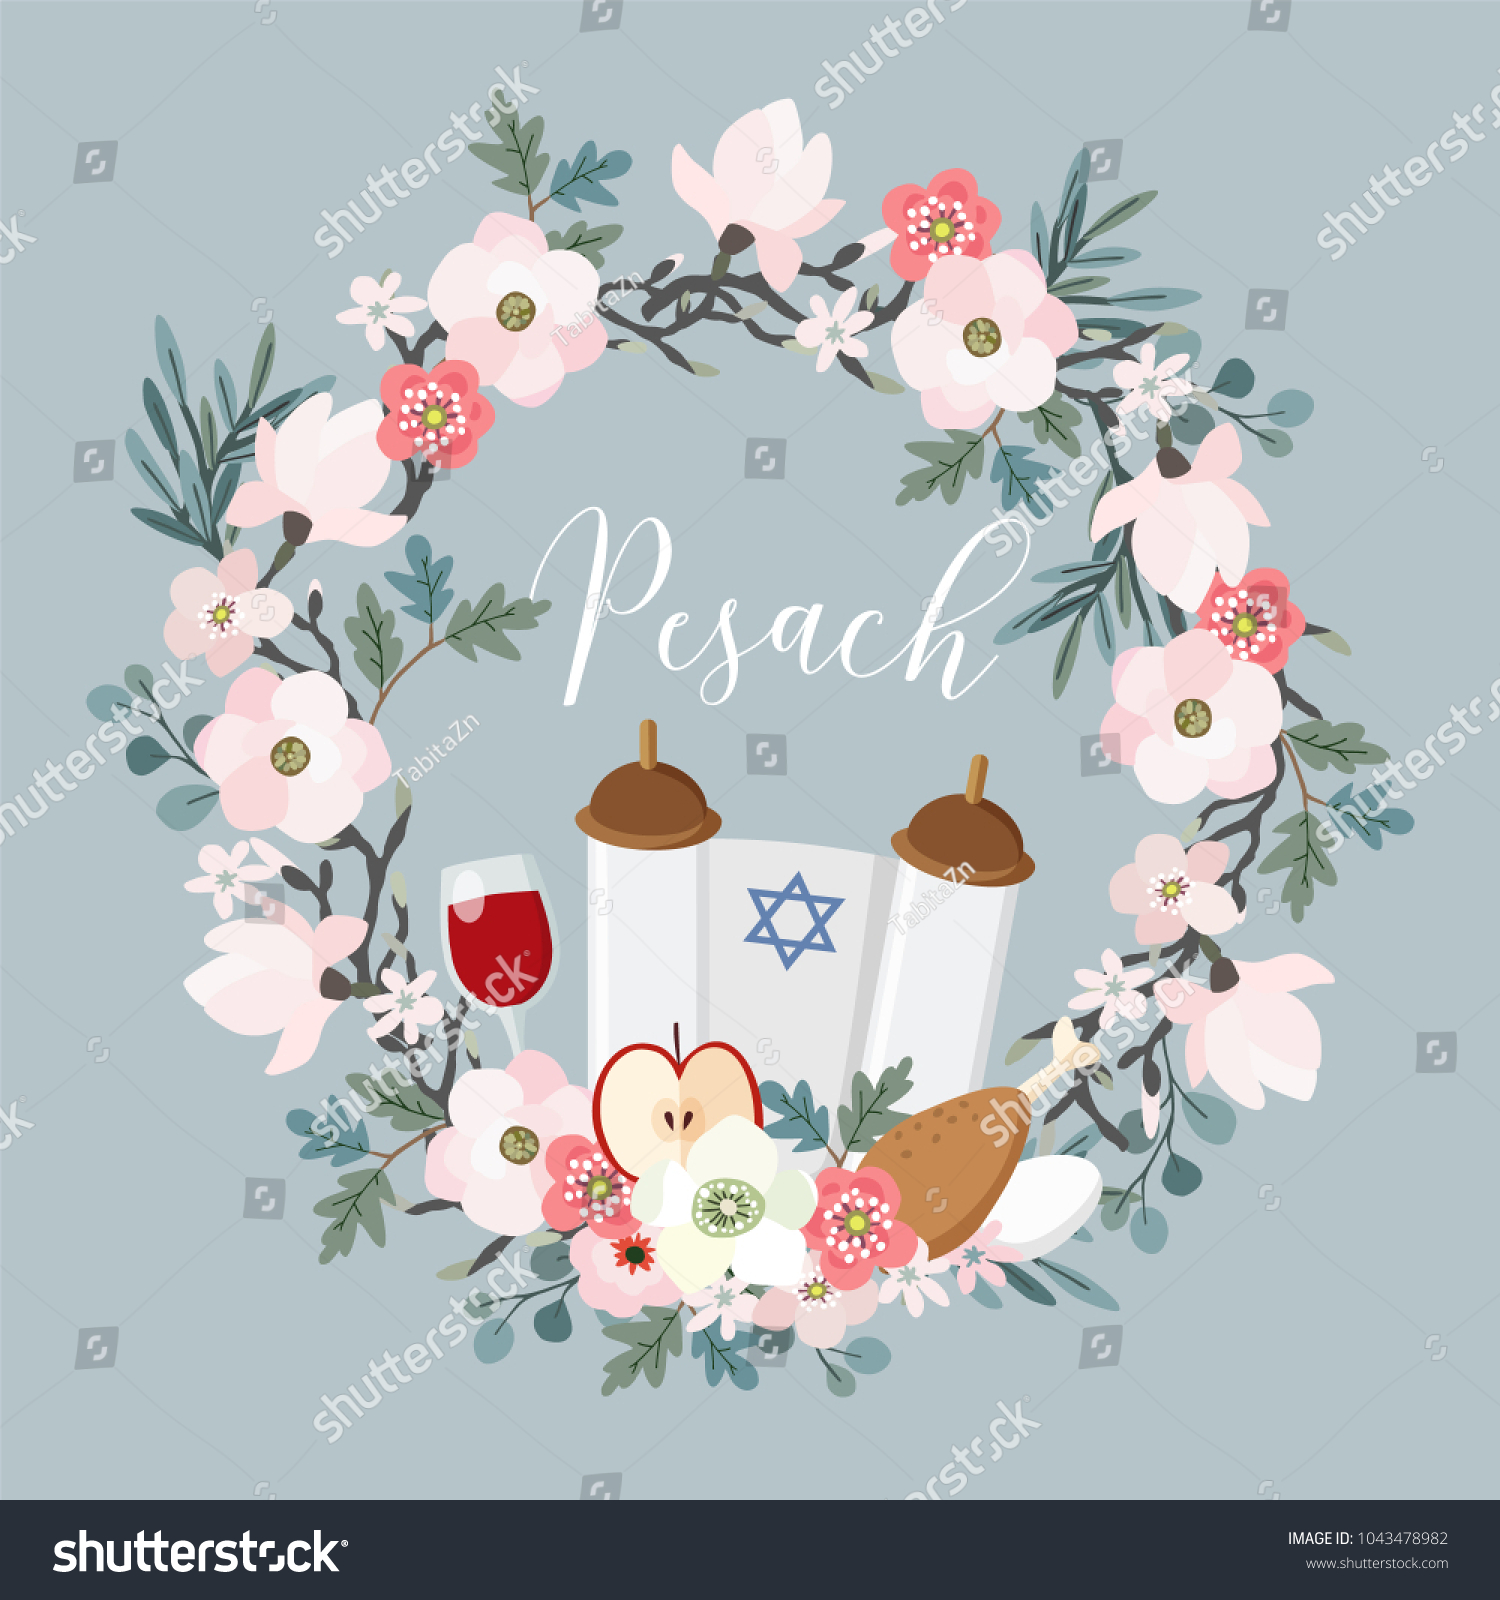 Pesach passover greeting card hand drawn stock vector royalty free pesach passover greeting card hand drawn floral wreath with torah jewish star m4hsunfo